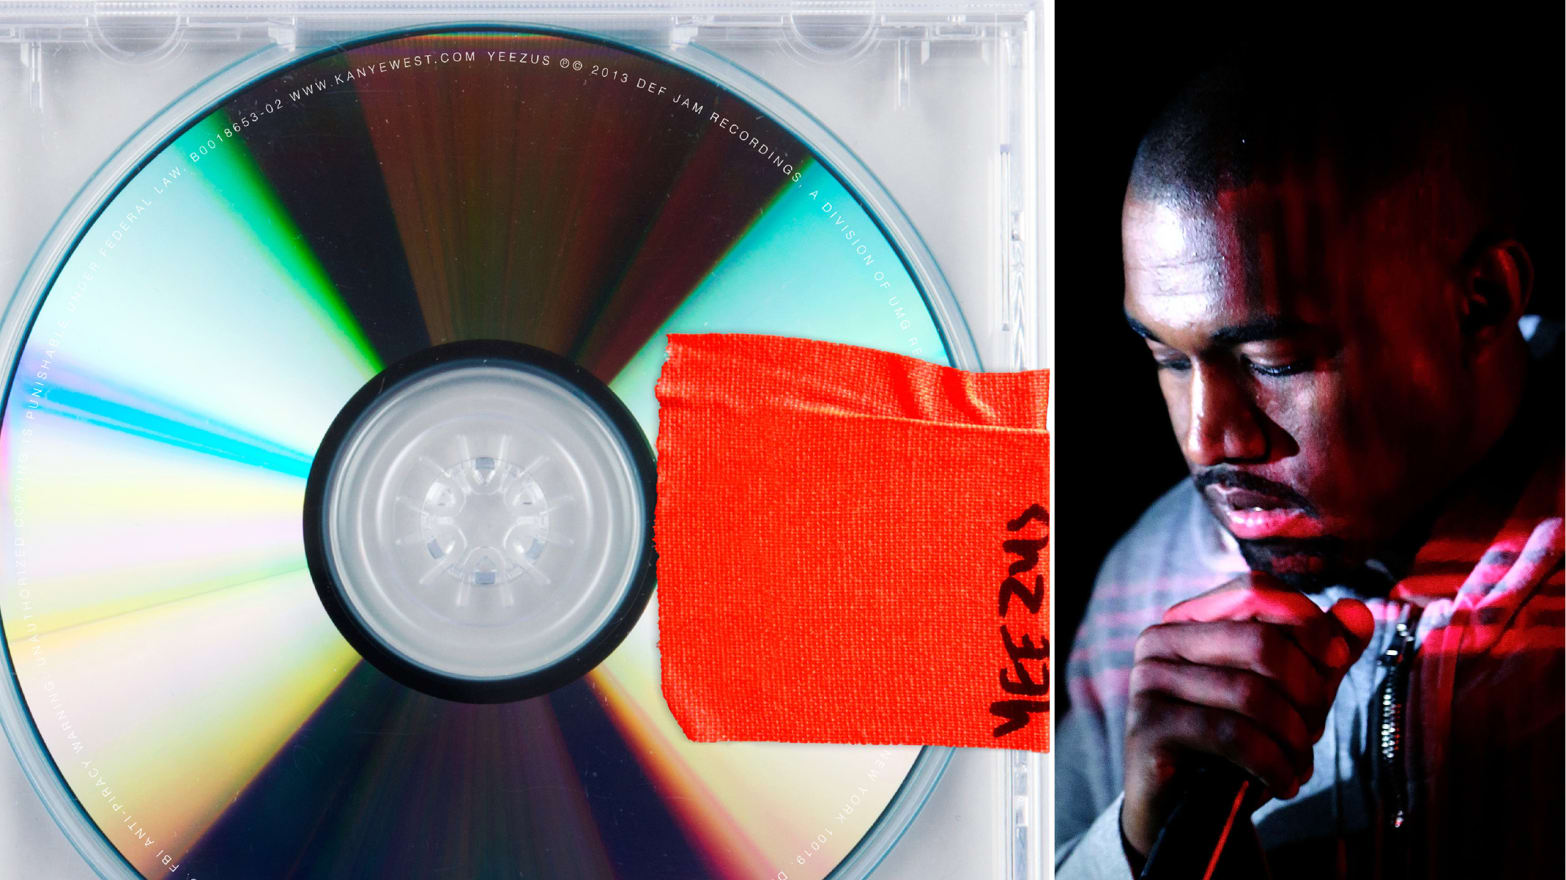 Praise 'Yeezus': Kanye West's New Album is an Eclectic Tour